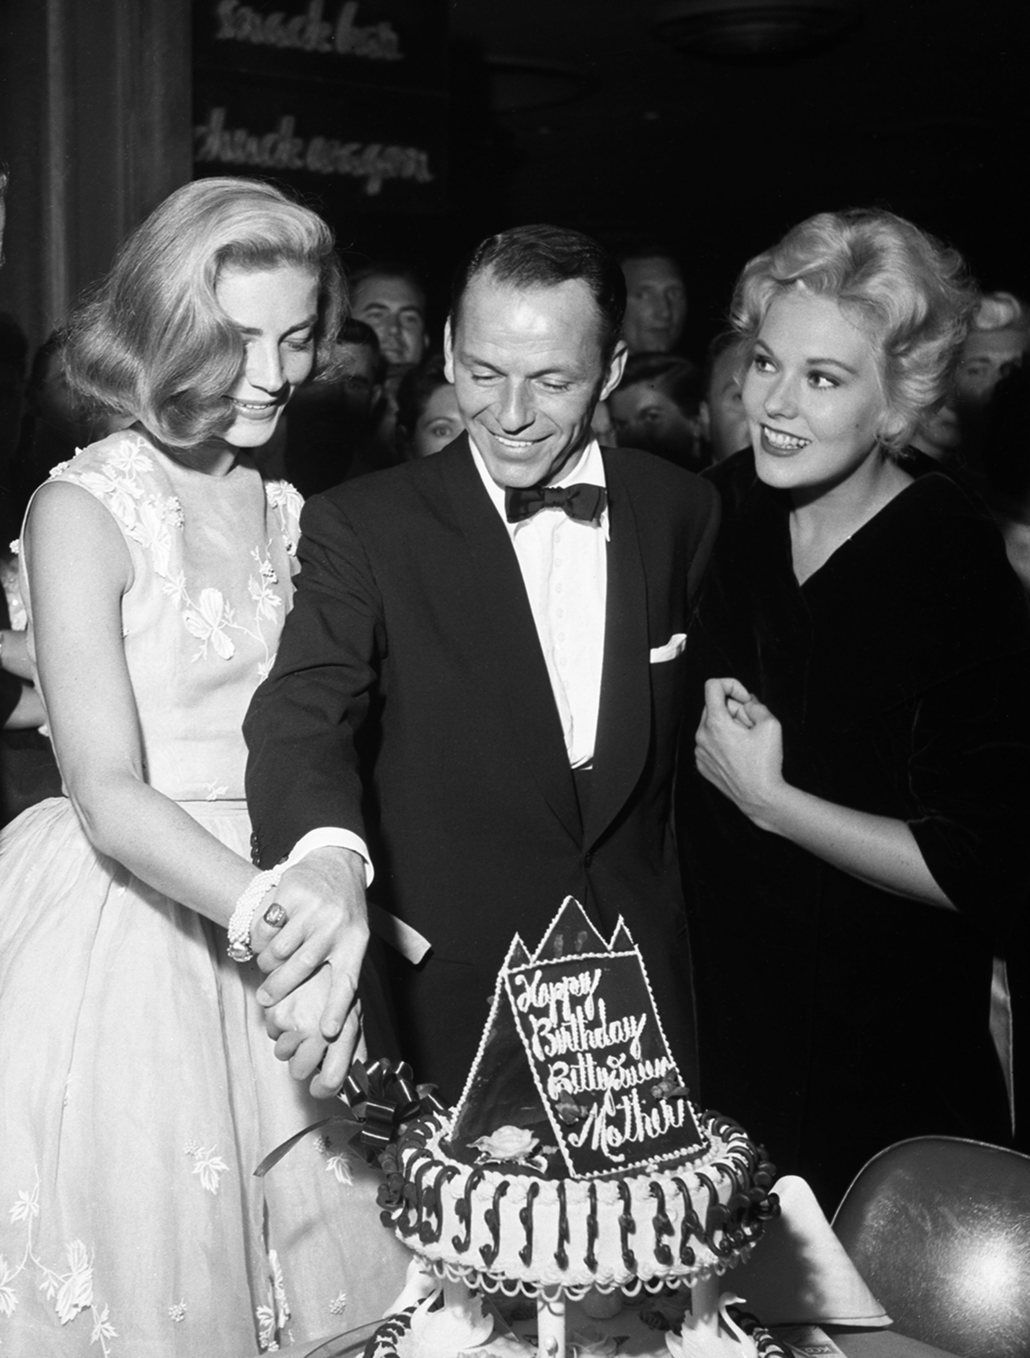 Fifties Lauren Bacall Cutting Her Birthday Cake With Frank Sinatra